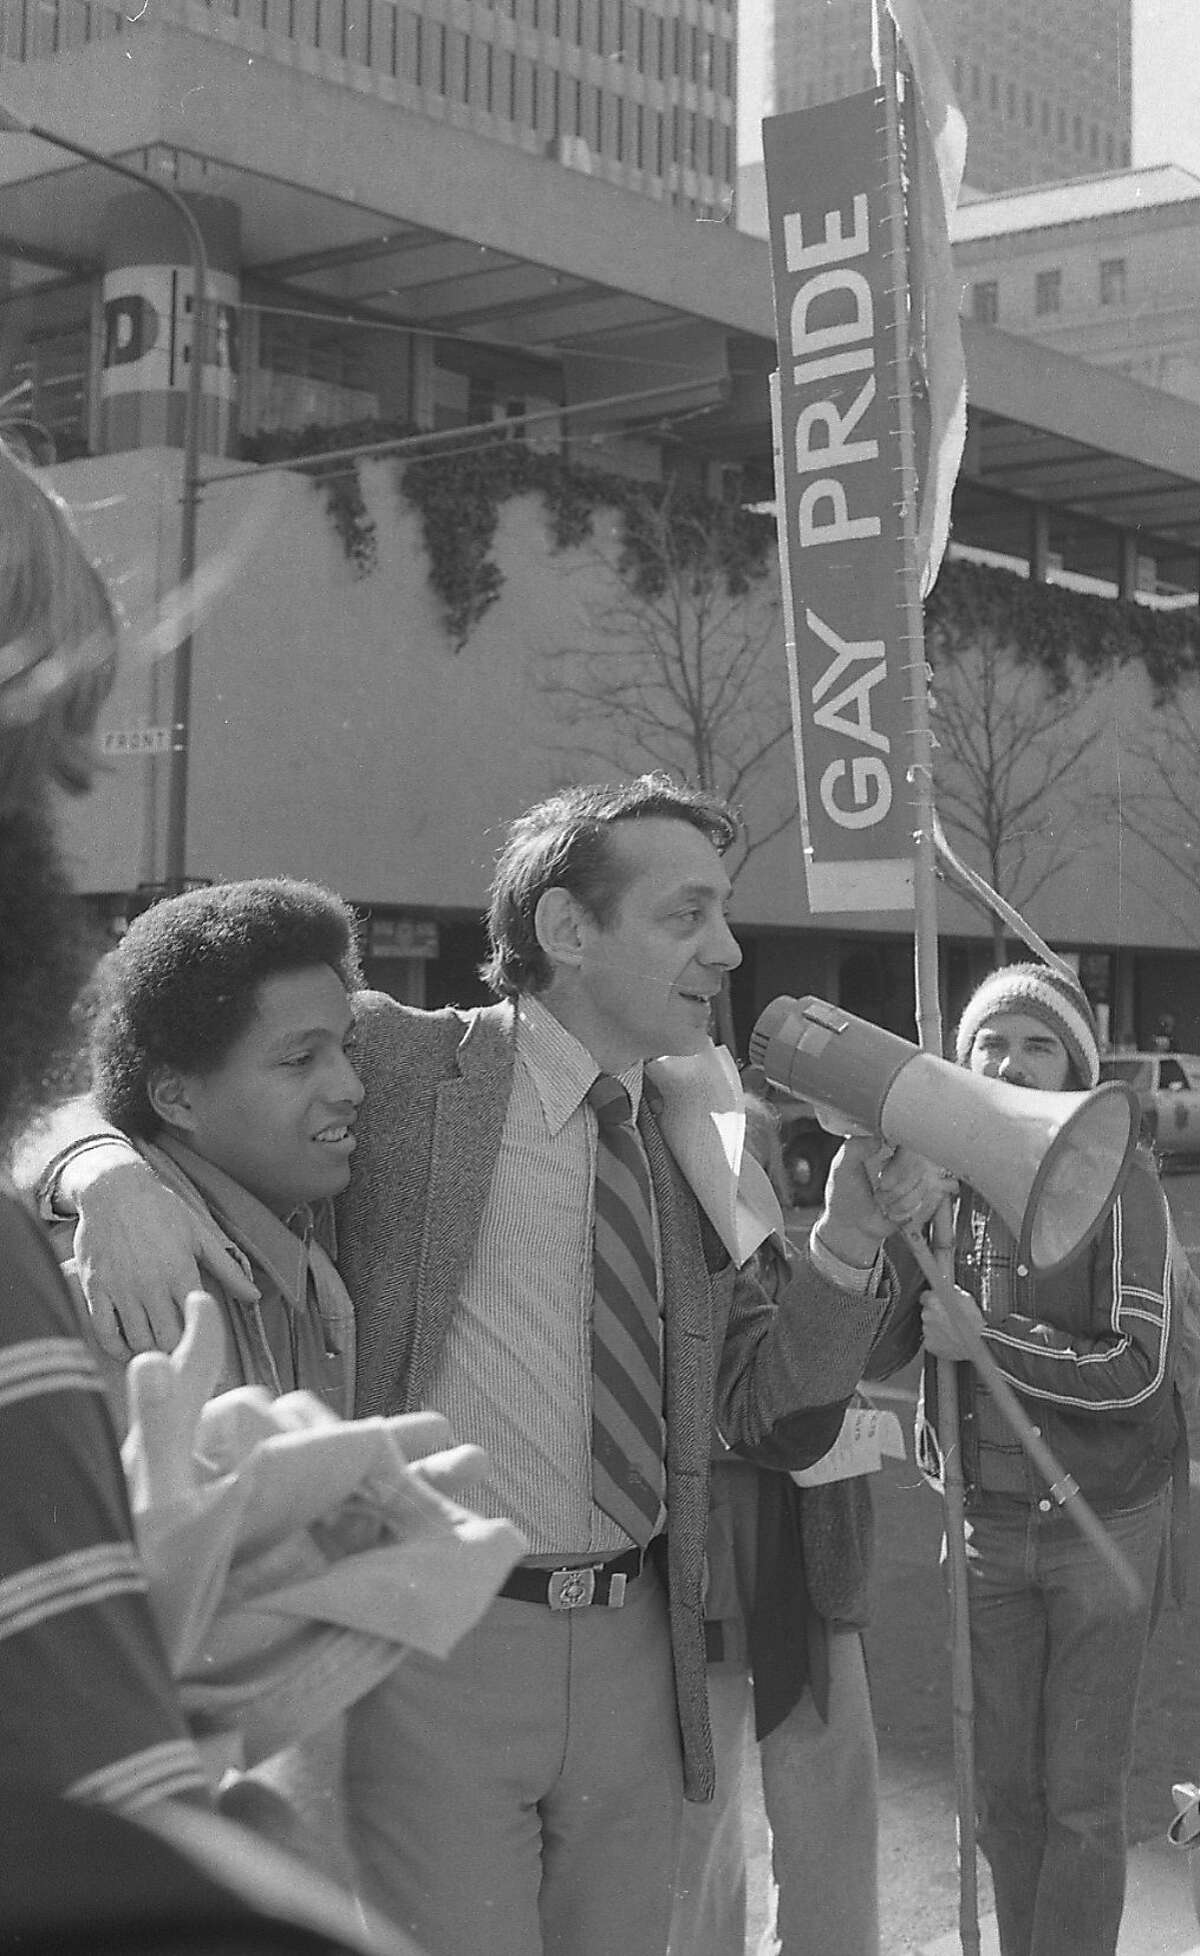 Harvey Milk speaks at a protest of a Canadian boycott of the magazine 'Body Politic' in front of the Alcoa building on Clay St. in San Francisco. 01/25/1978